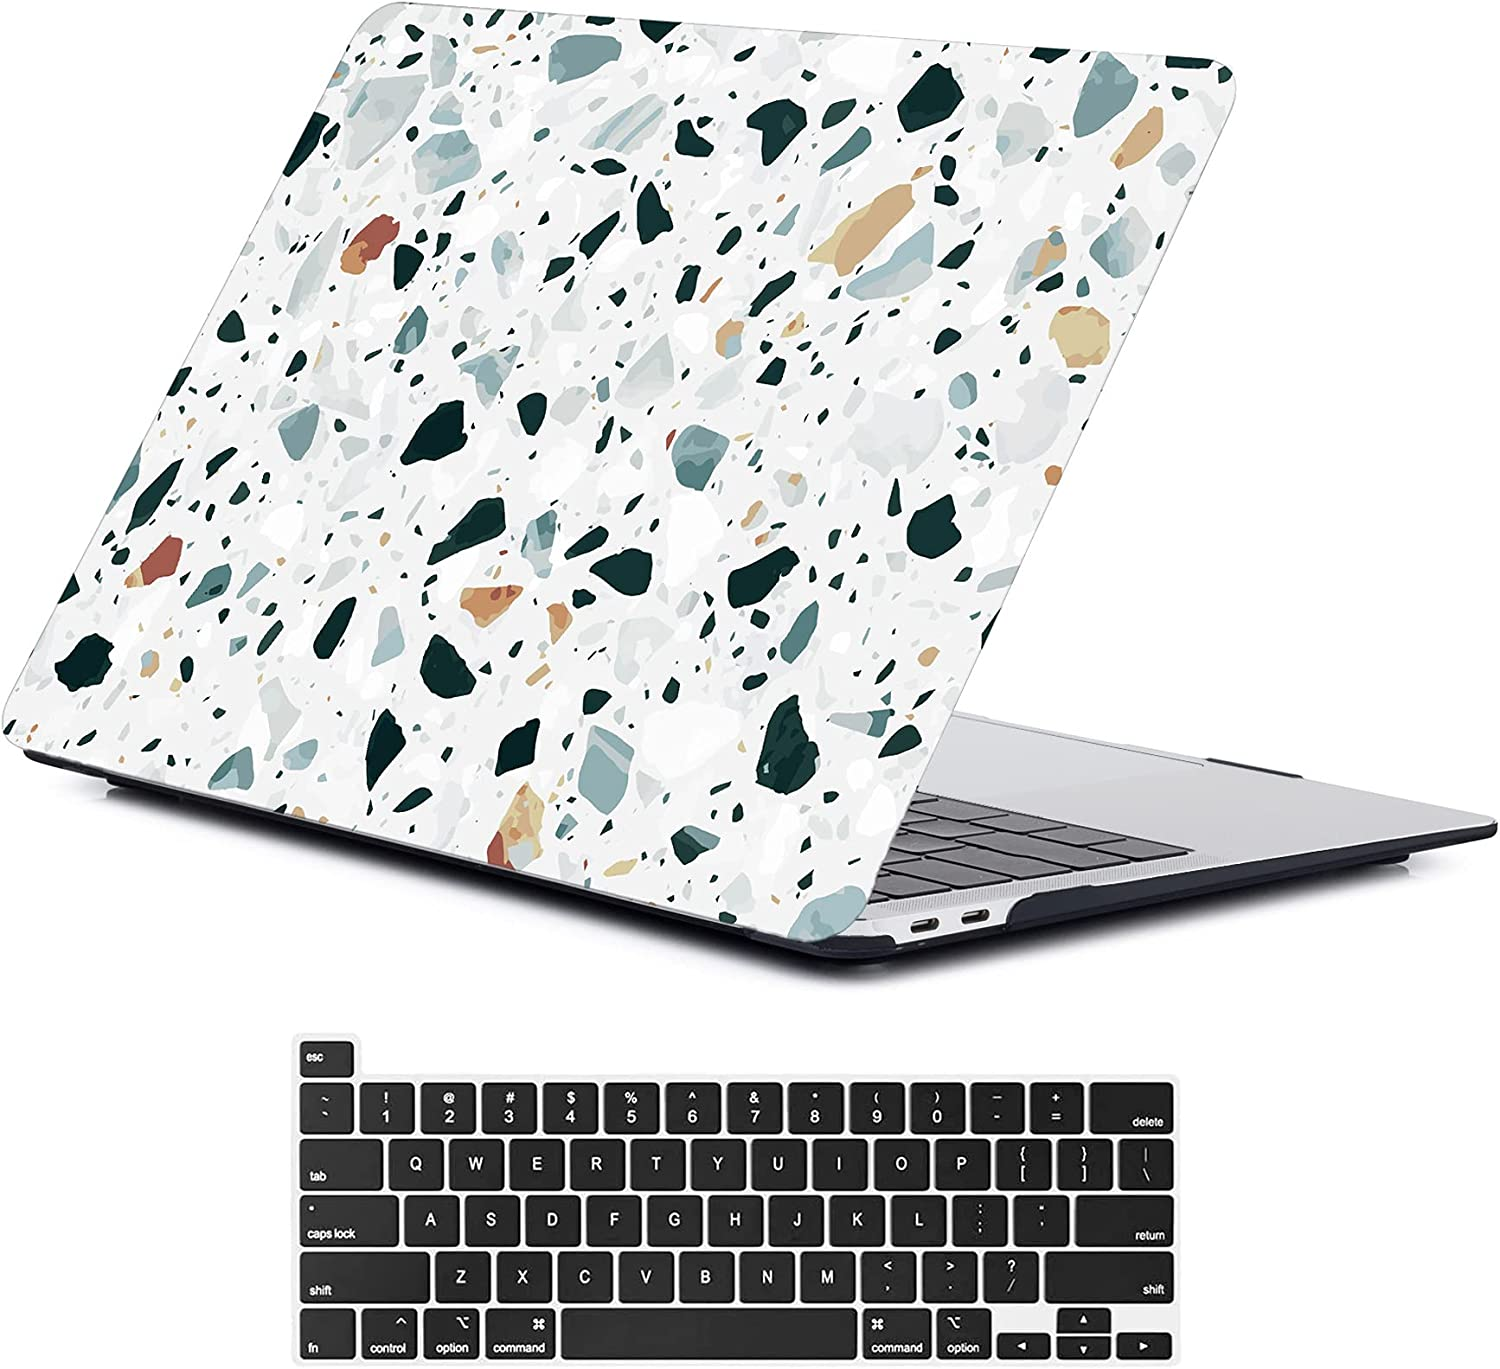 LanBaiLan New MacBook pro 13 inch Case 2020 2019 2018 2017 2016 Release M1 A2338 A2289 A2251 A2159 A1989 A1706 A1708, Terrazzo Laptop Case and Keyboard Cover Compatible for MacBook Pro 13 inches